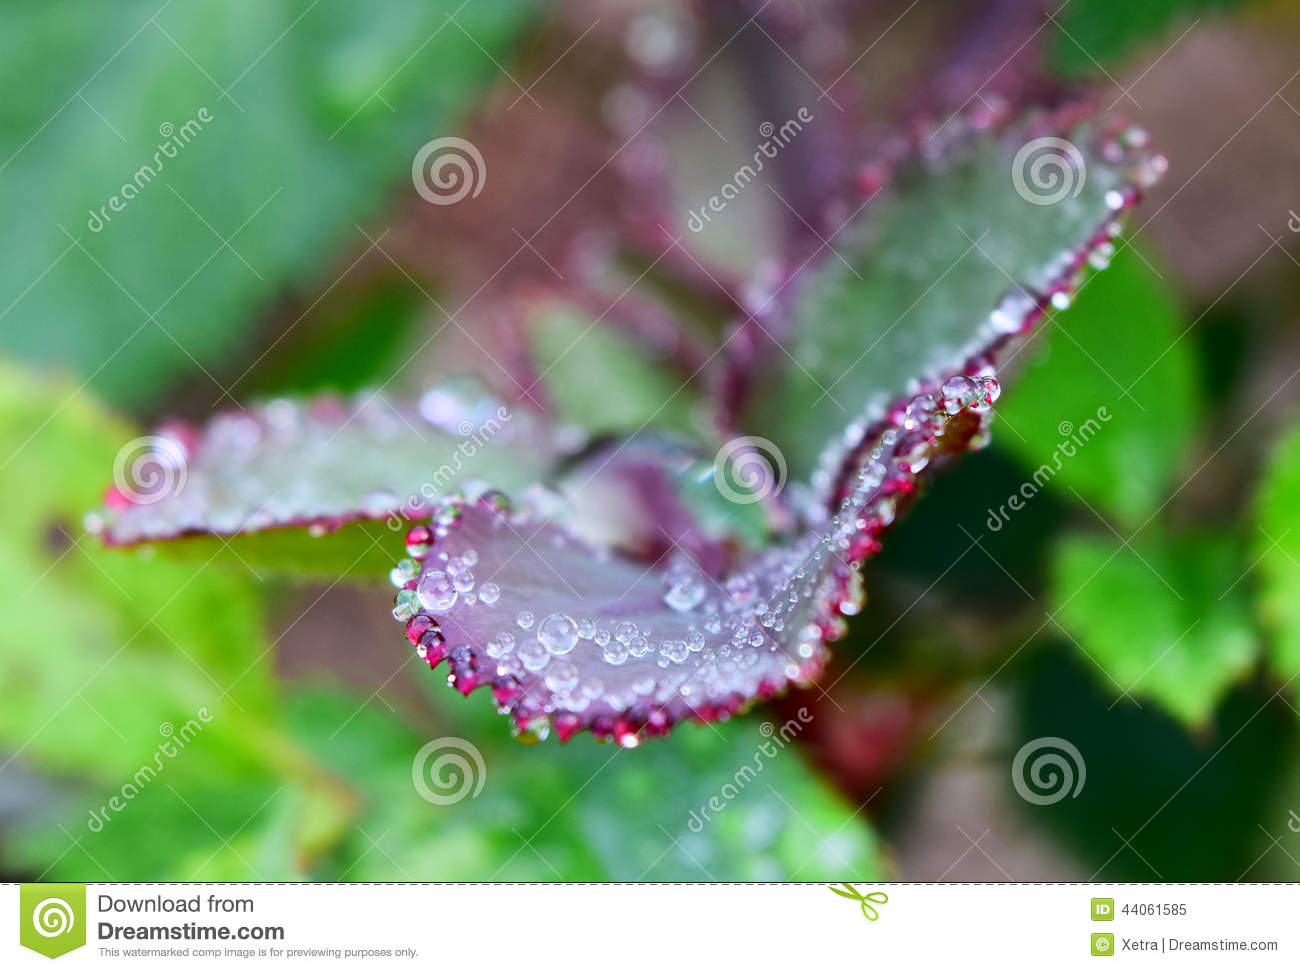 Water Drops On Plants